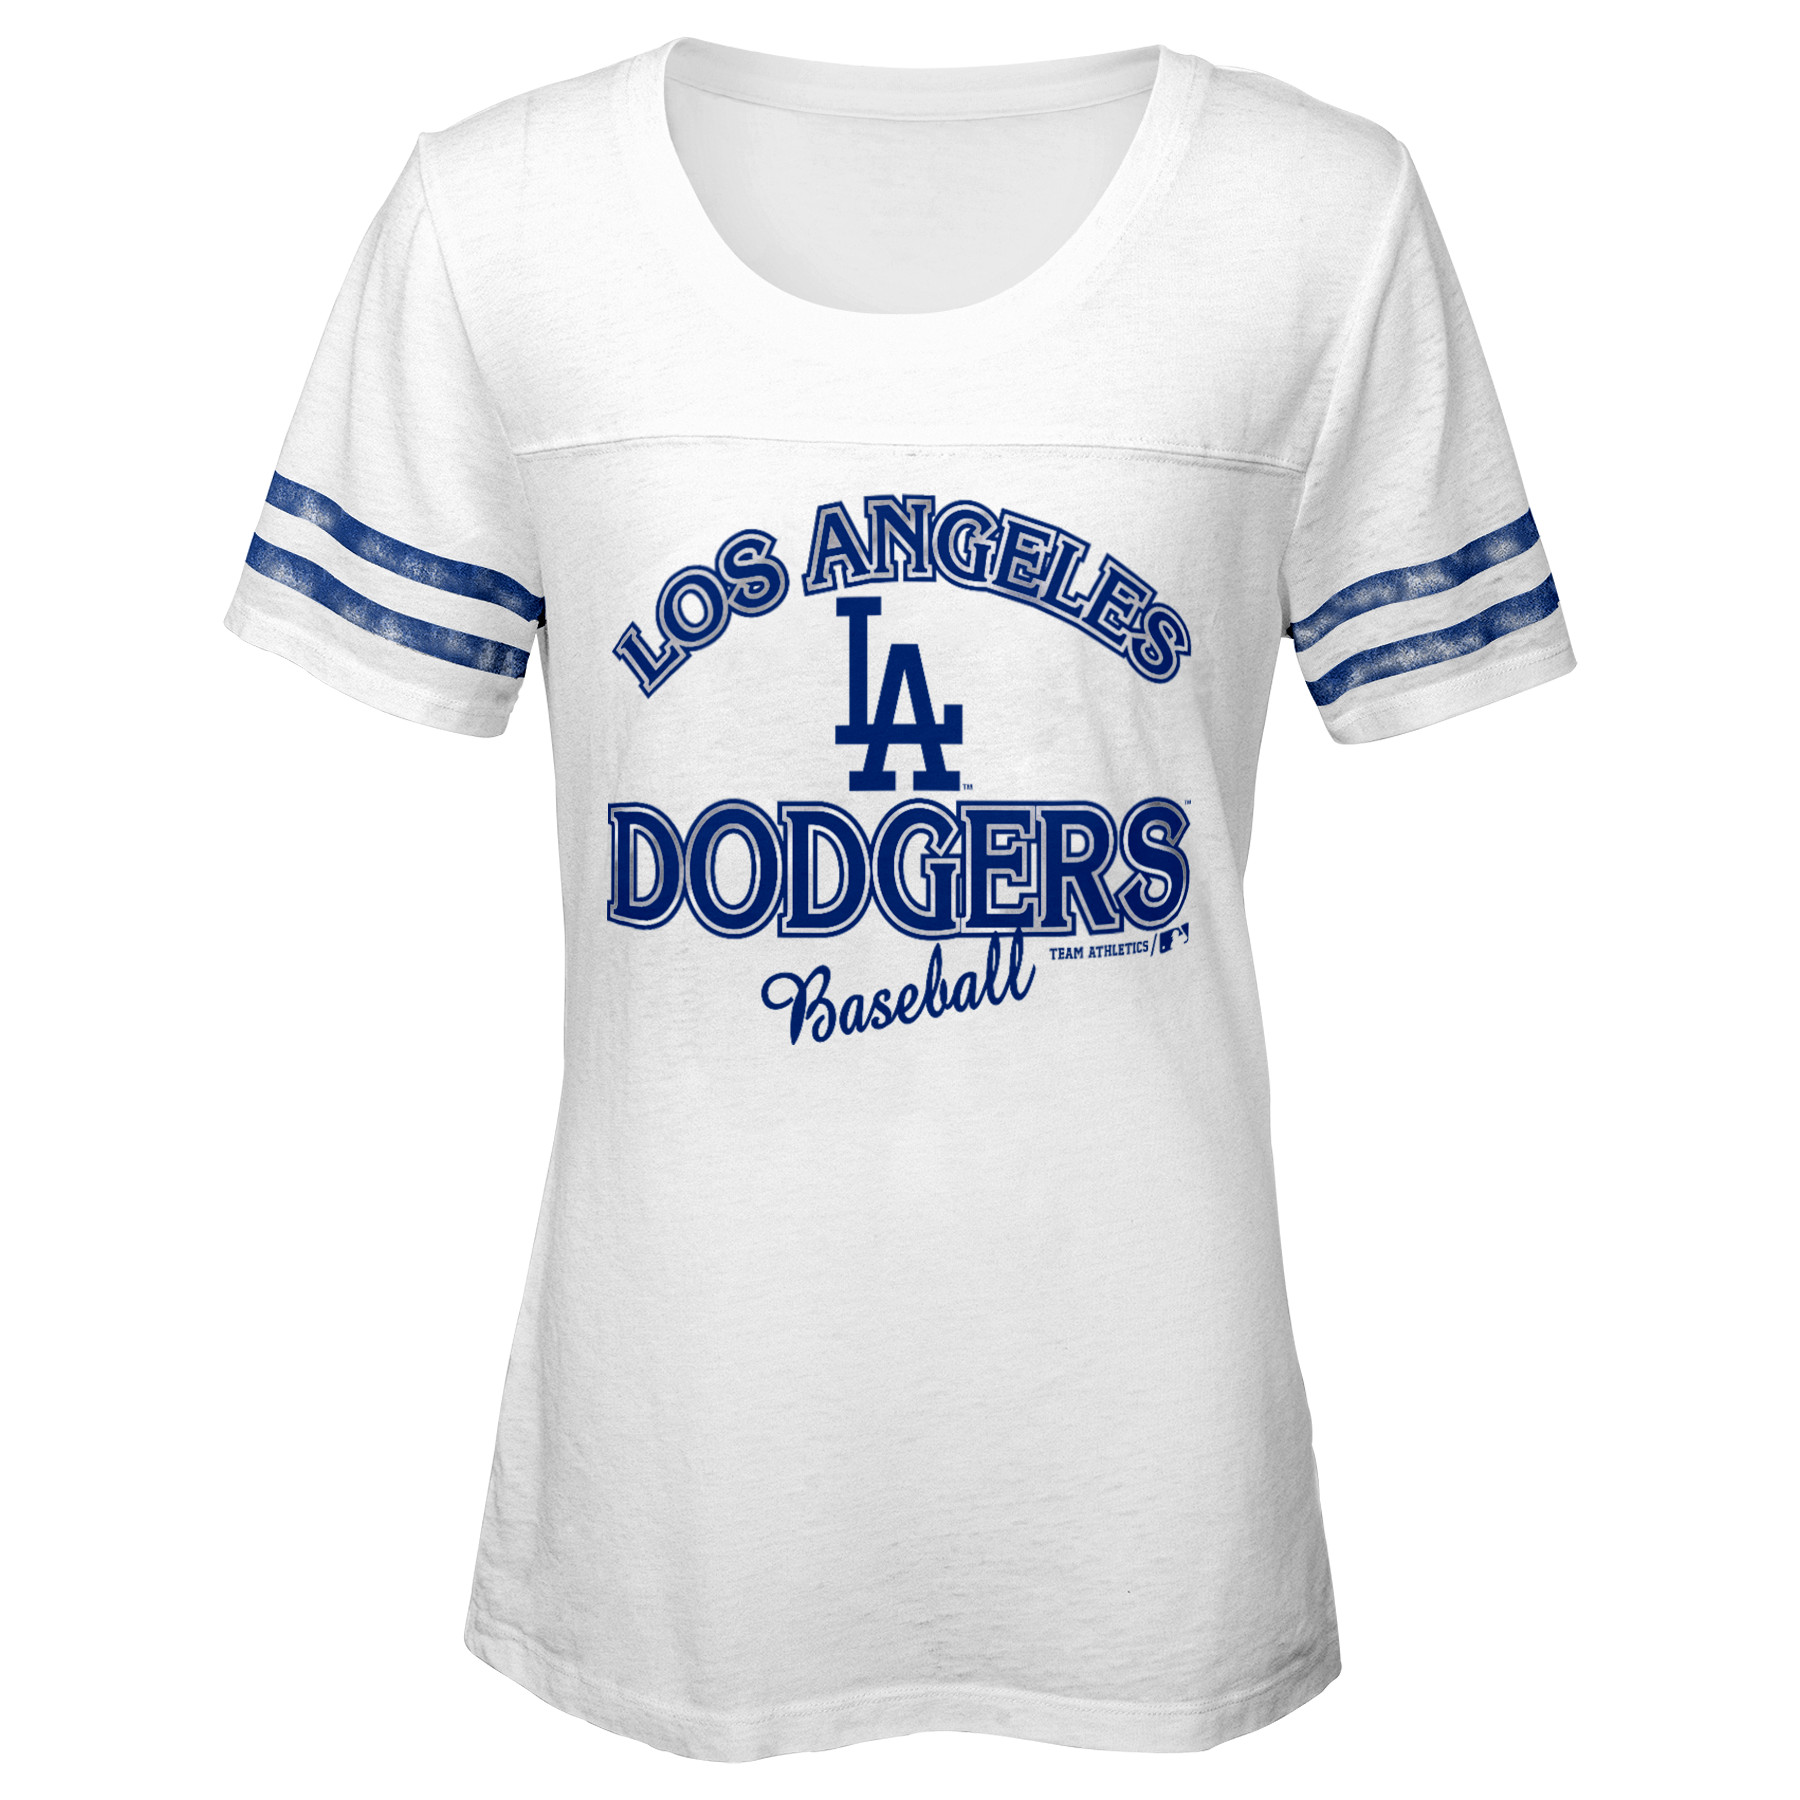 MLB Los Angeles Dodgers TEE Short Sleeve Girls Fashion 60% Cotton 40% Polyester Alternate Team Colors 7 - 16